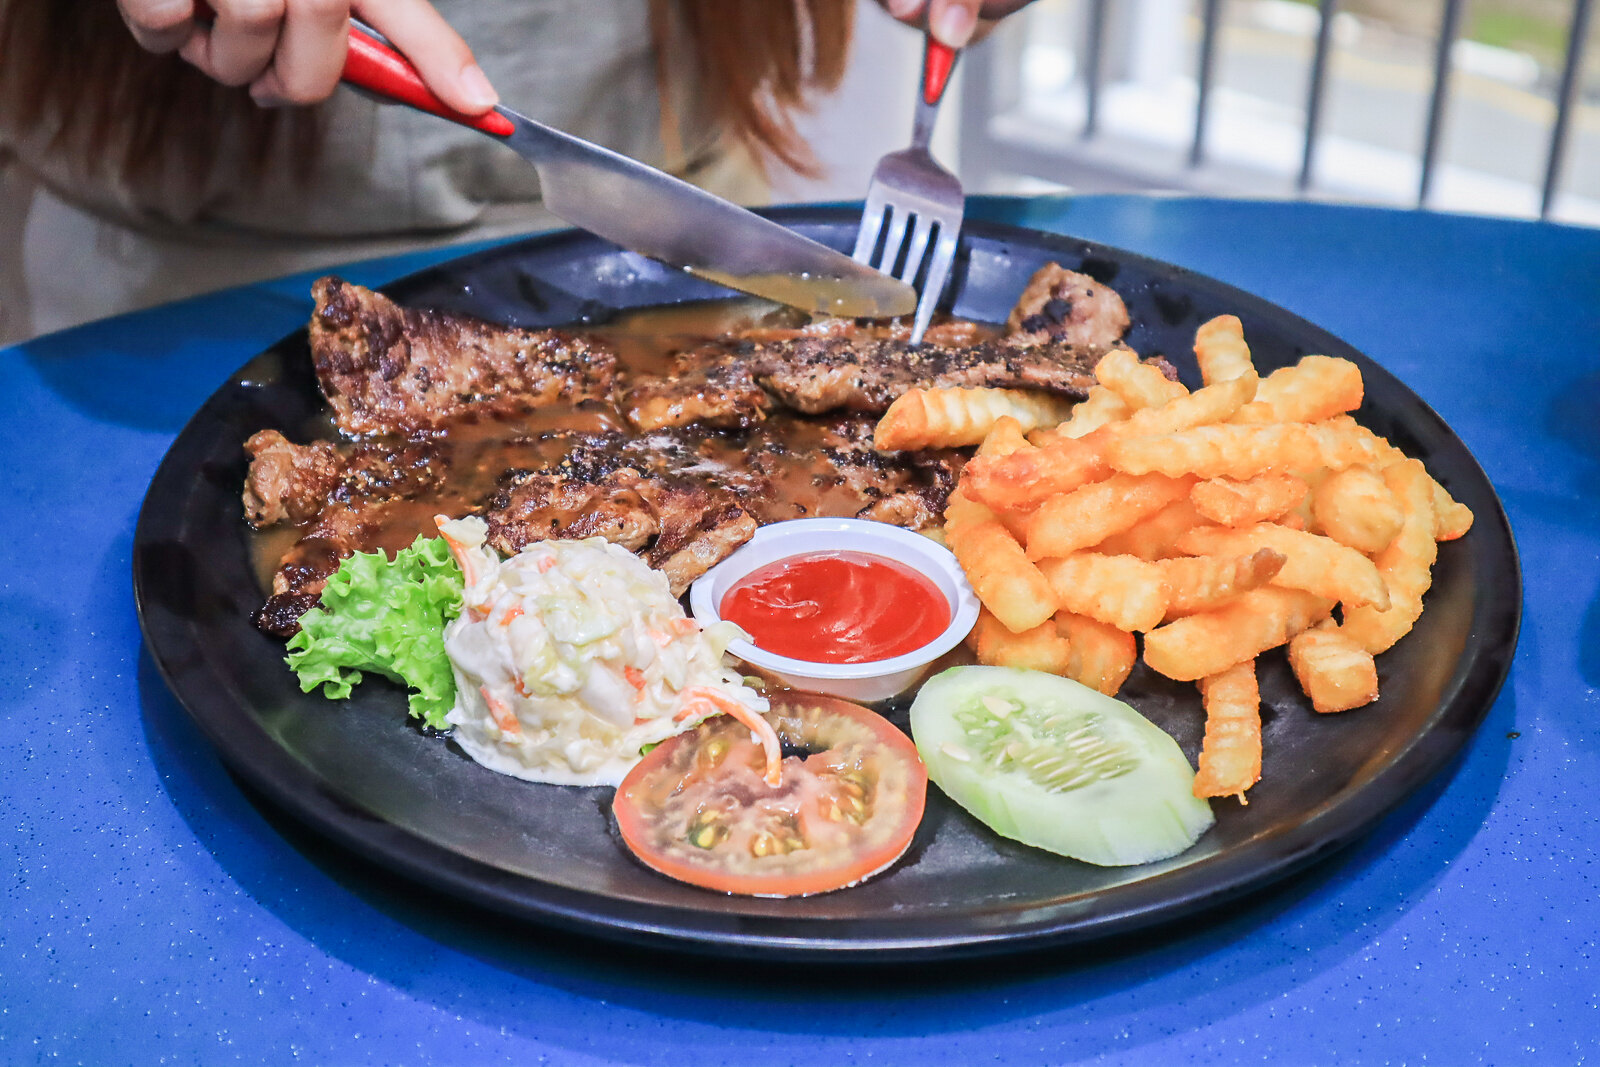 Taman Jurong Market and Food Centre - Tom's Kitchen steak